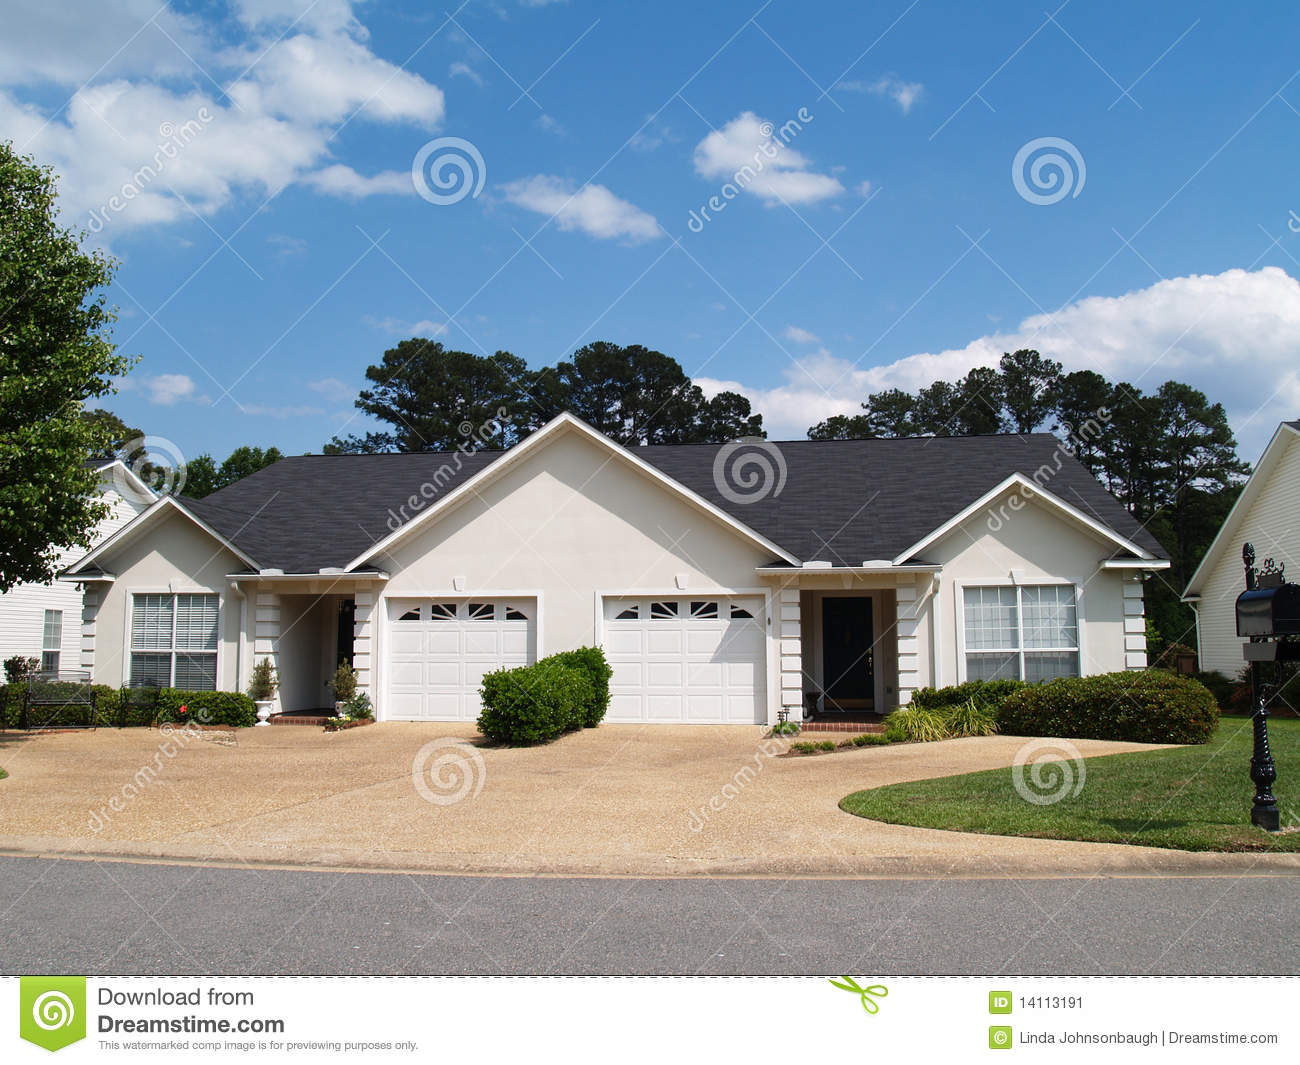 New one story small white vinyl duplex homes stock image for Duplex home builders